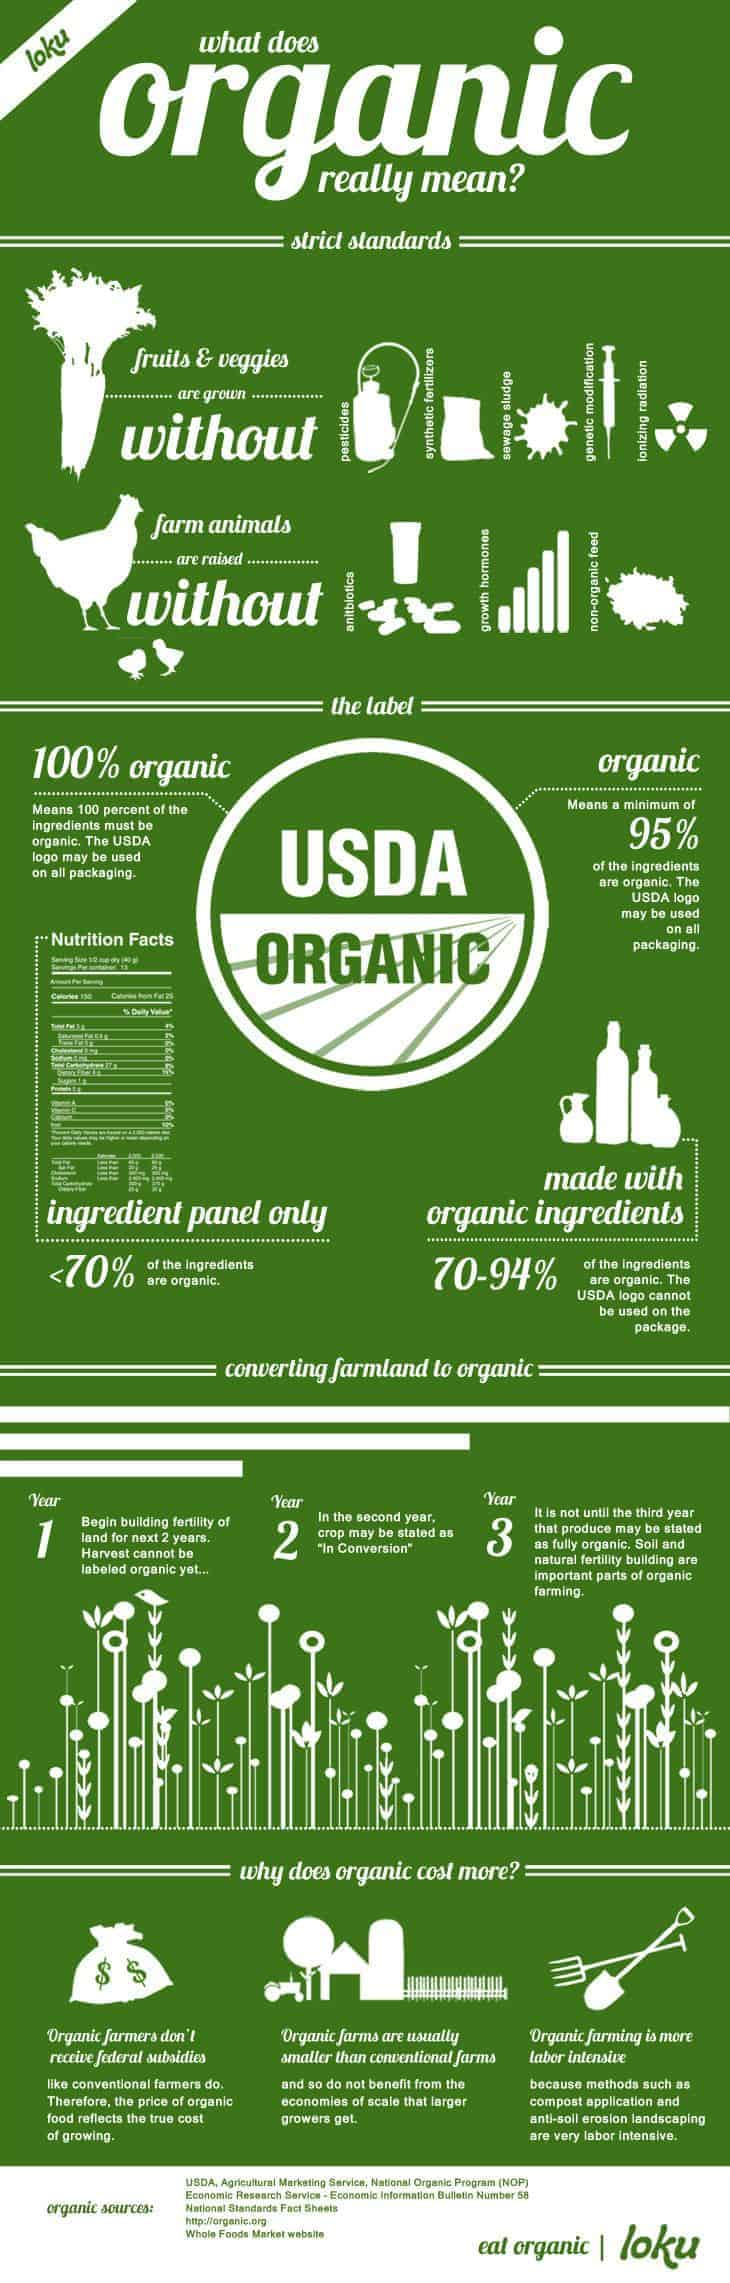 organic food means what